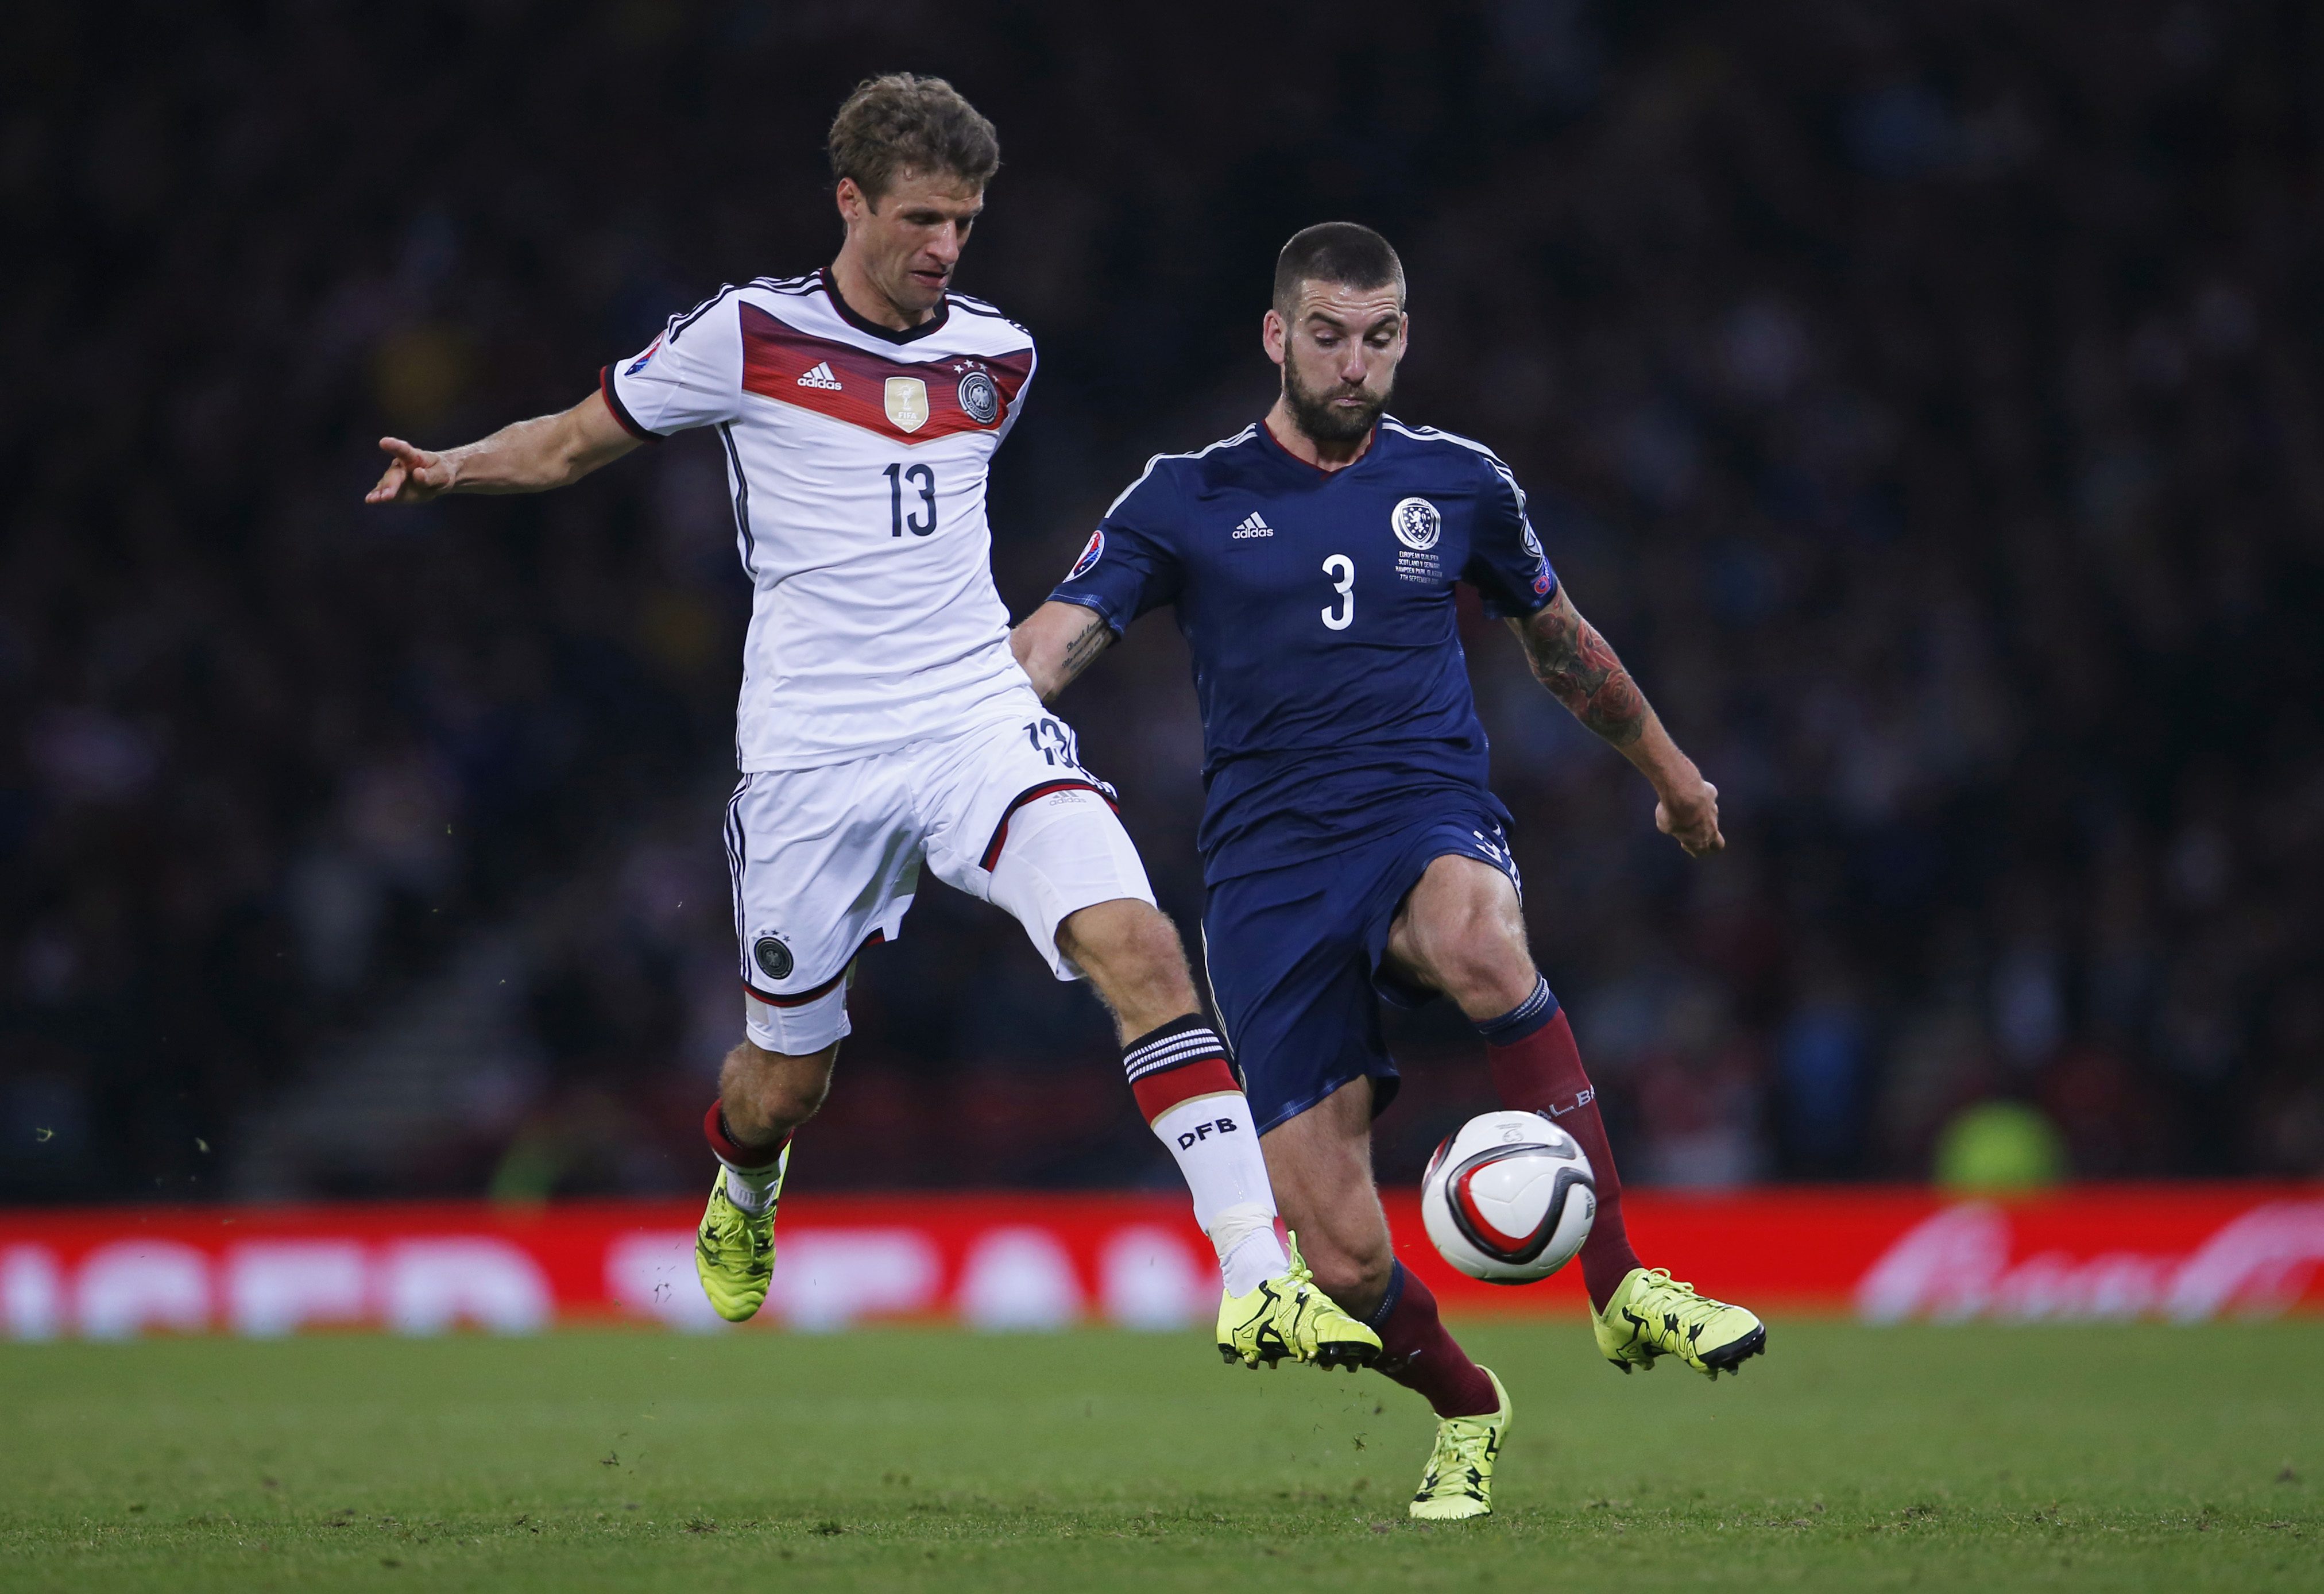 Football - Scotland v Germany - UEFA Euro 2016 Qualifying Group D - Hampden Park, Glasgow, Scotland - 7/9/15nGermany's Thomas Muller in action with Scotland's Charlie MulgrewnAction Images via Reuters / Lee SmithnLivepic